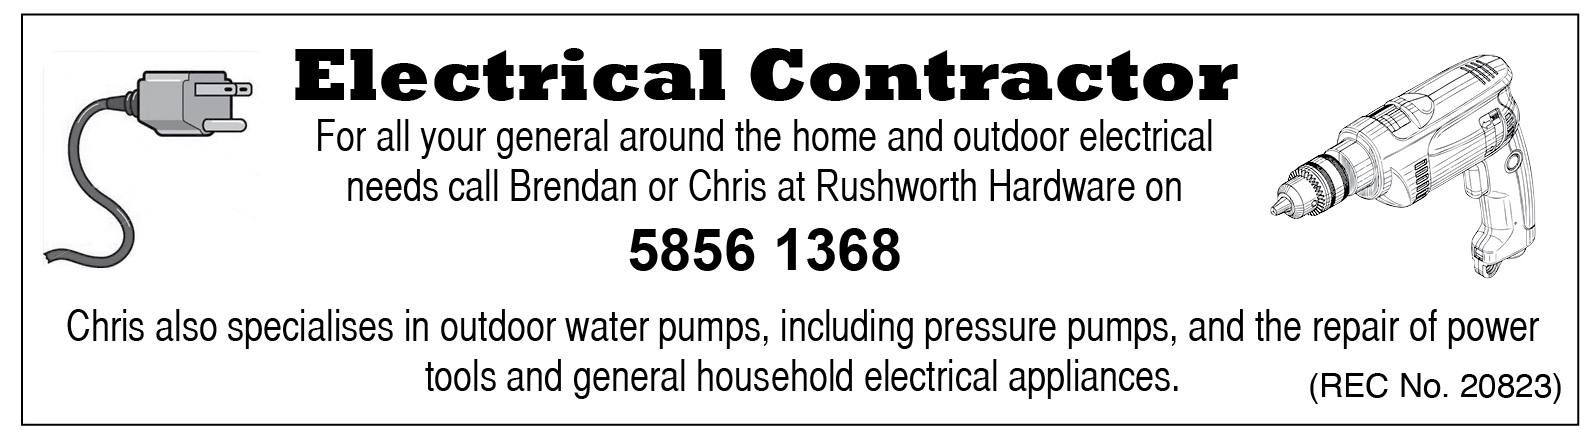 Rushworth Hardware Electrical image